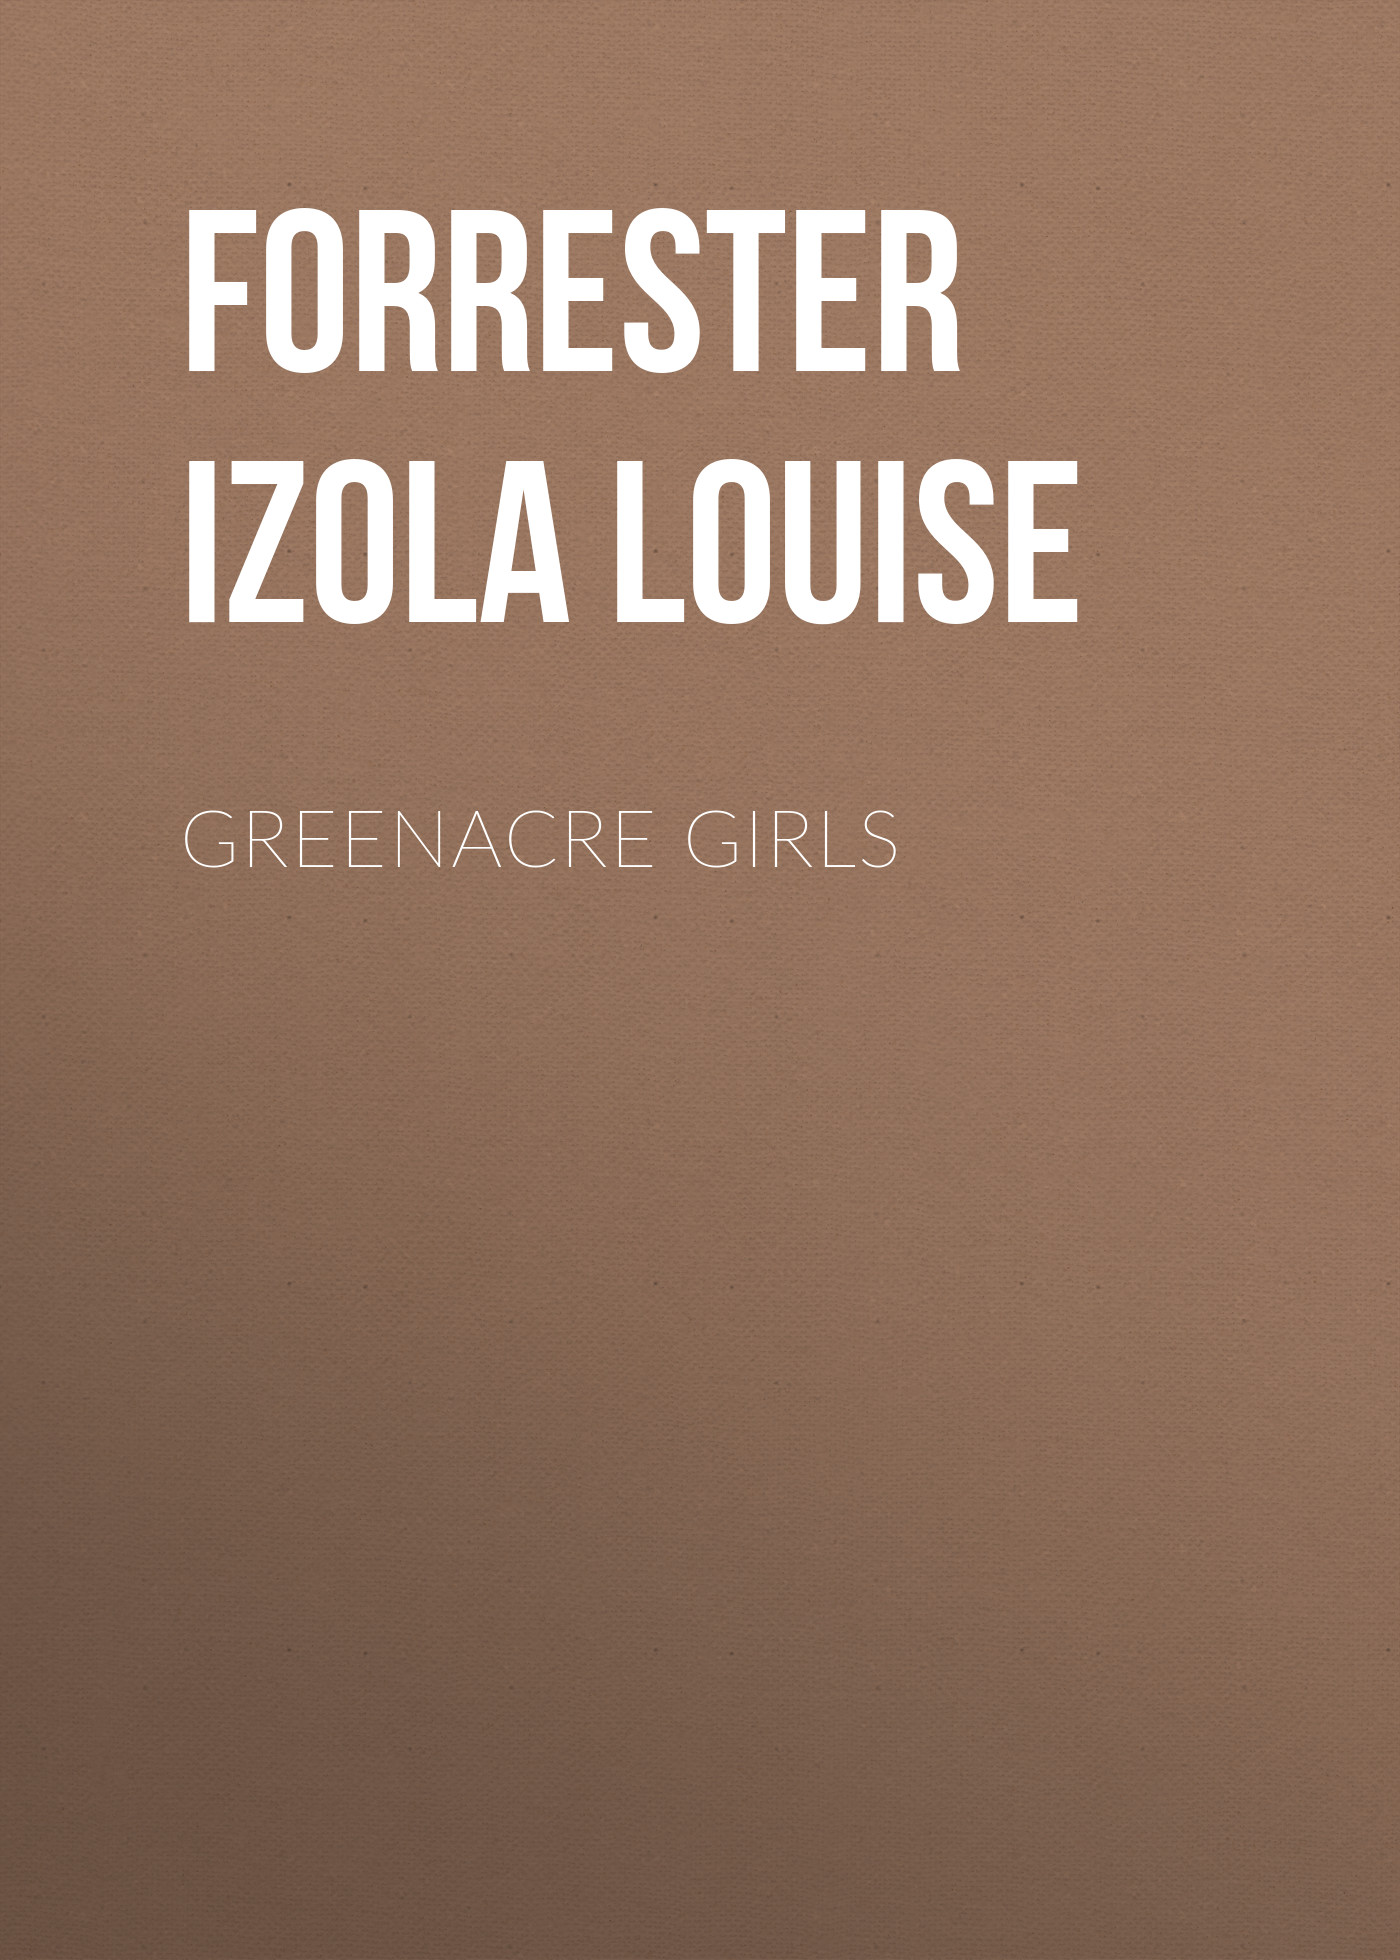 Forrester Izola Louise Greenacre Girls